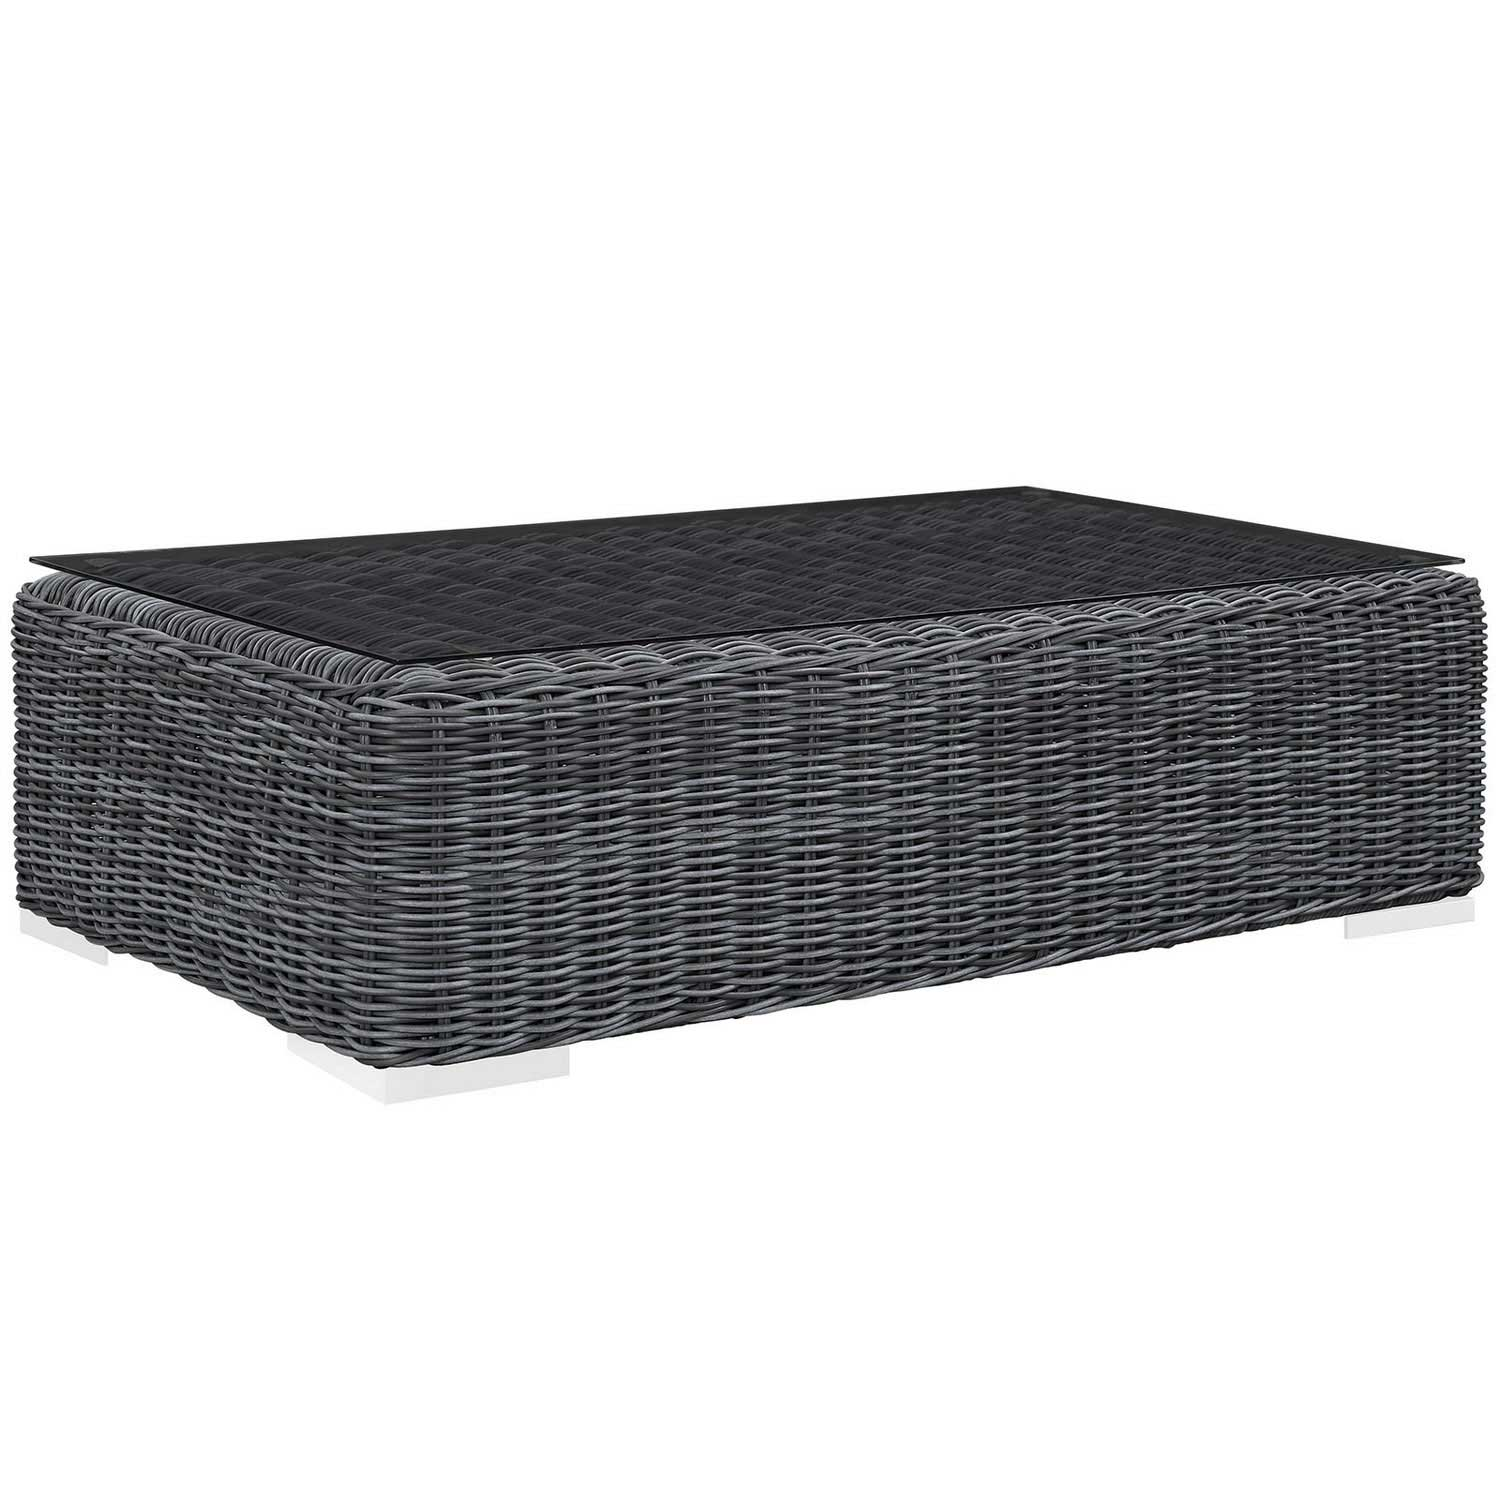 Modway Summon Outdoor Patio Glass Top Coffee Table - Gray